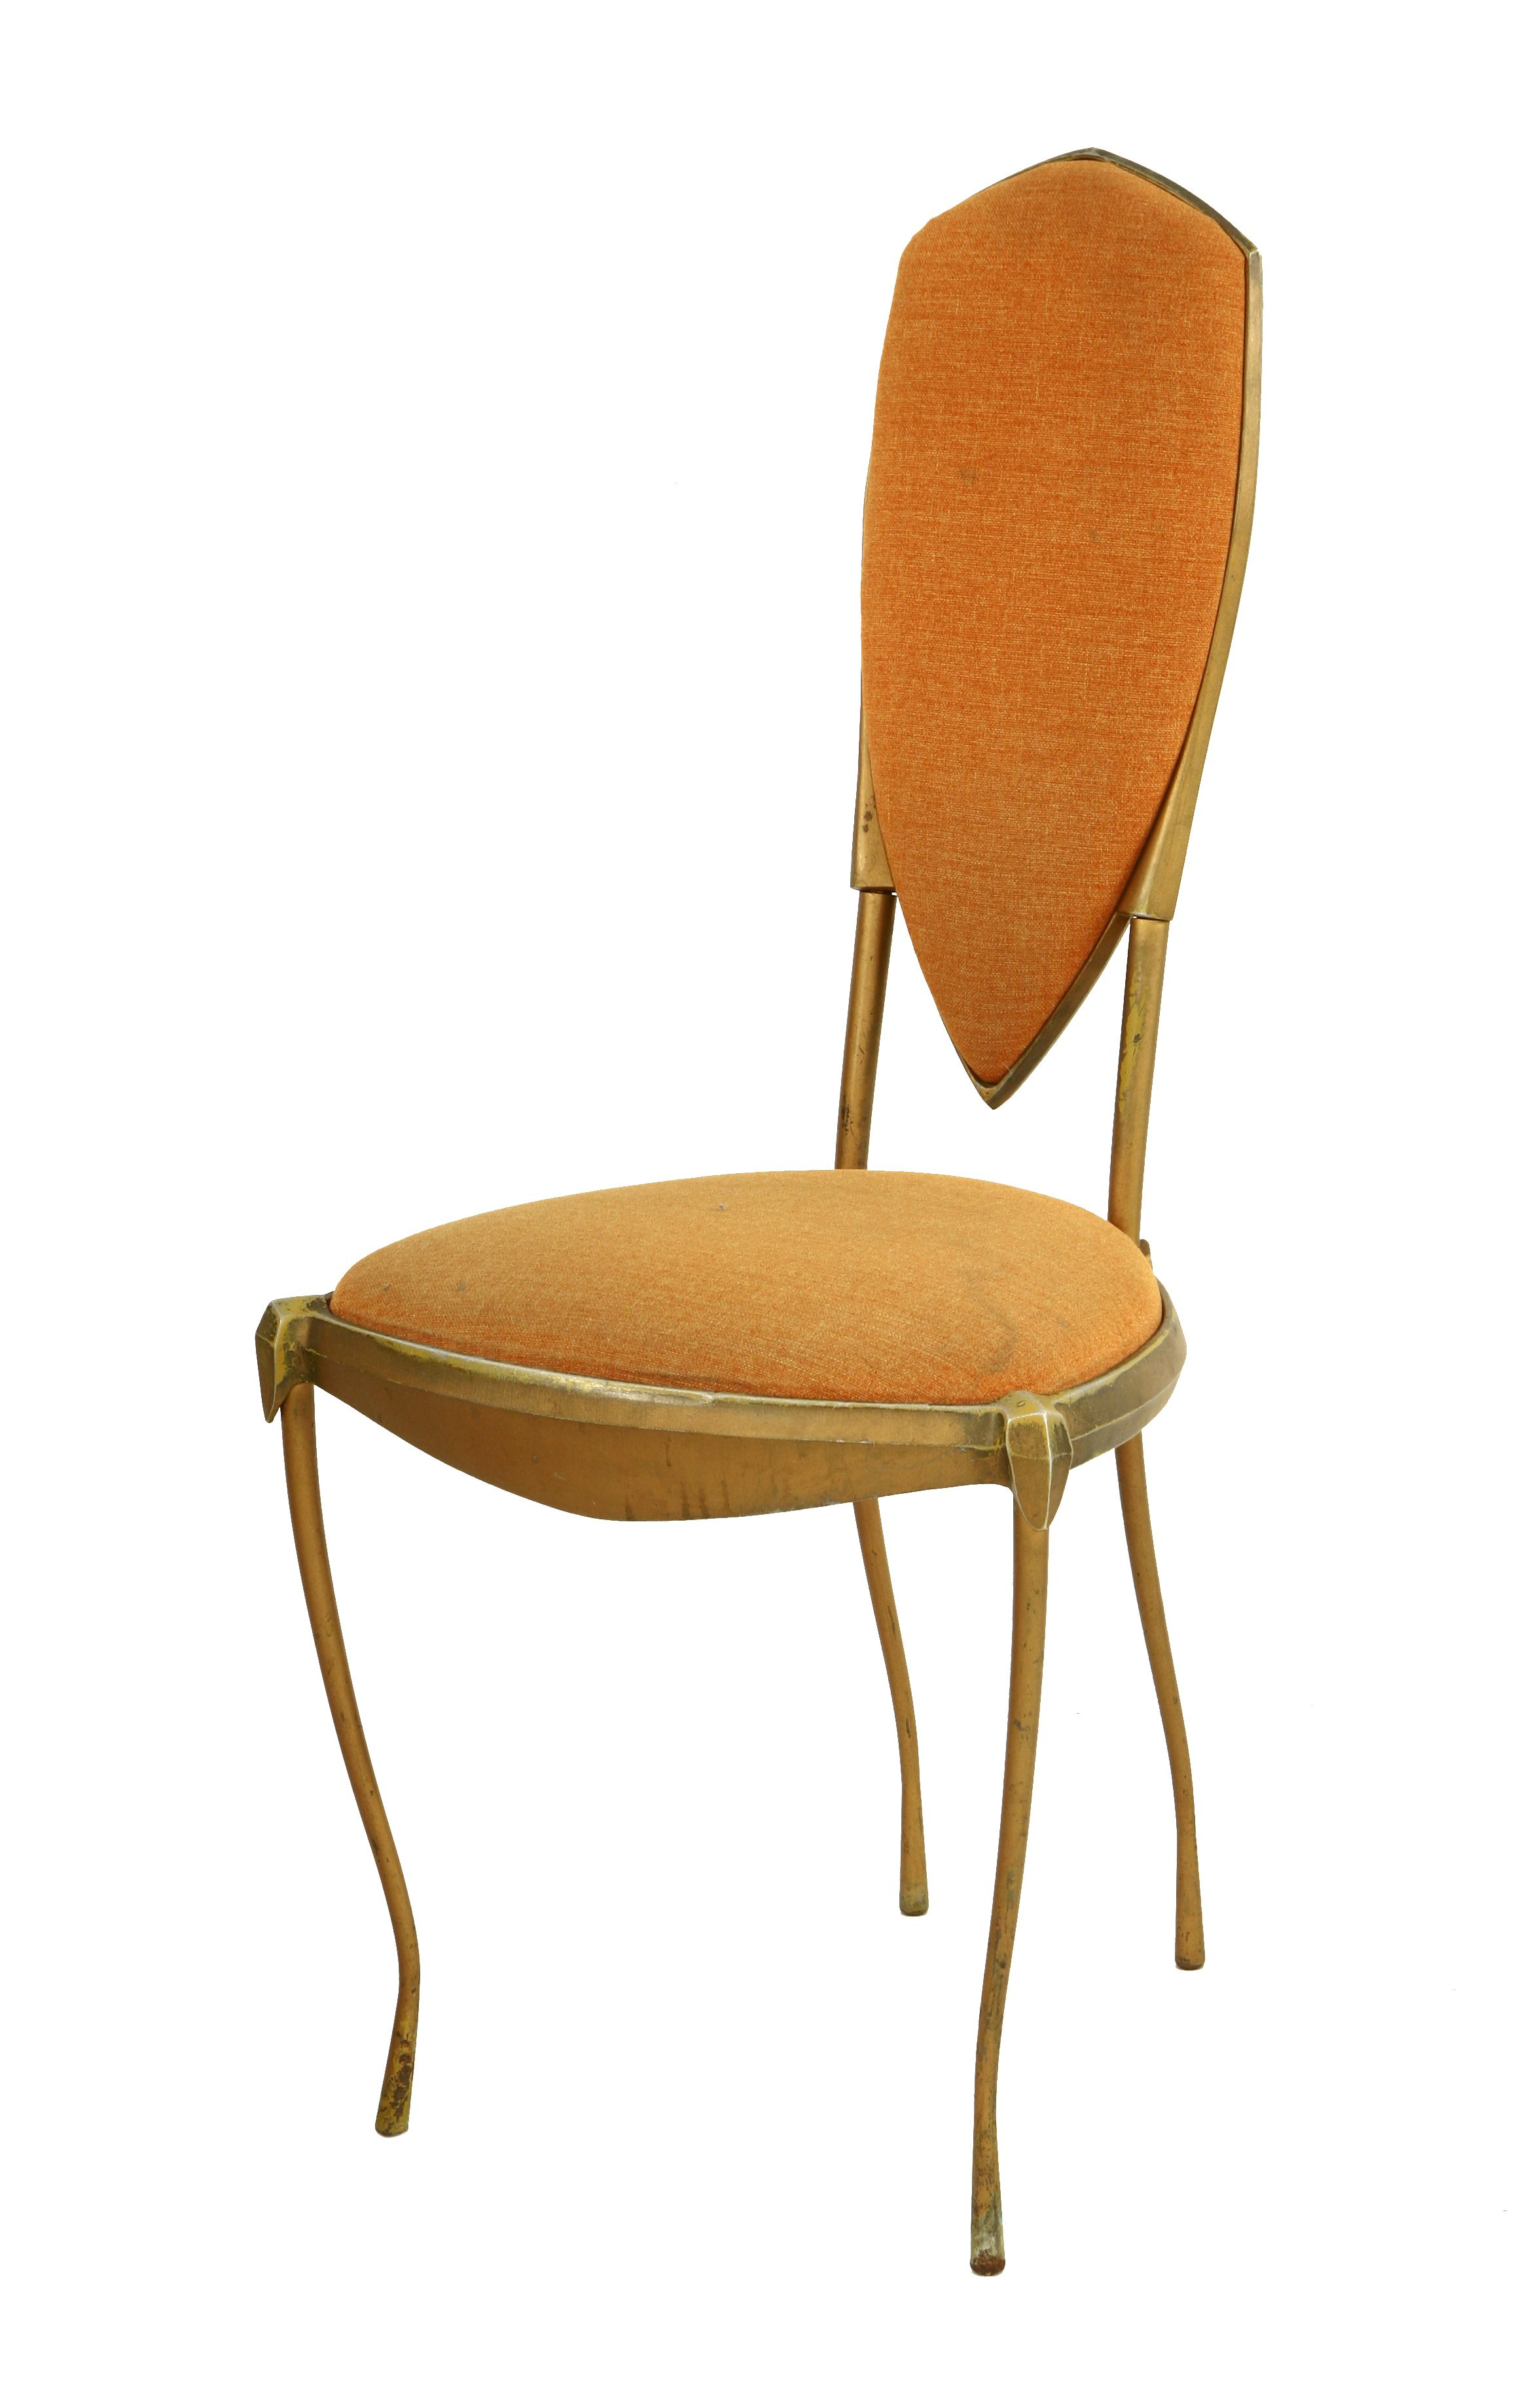 A side chair, by Mark Brazier-Jones, the gilded frame with peach upholstered back and seat Sold for £400 30th July 2014